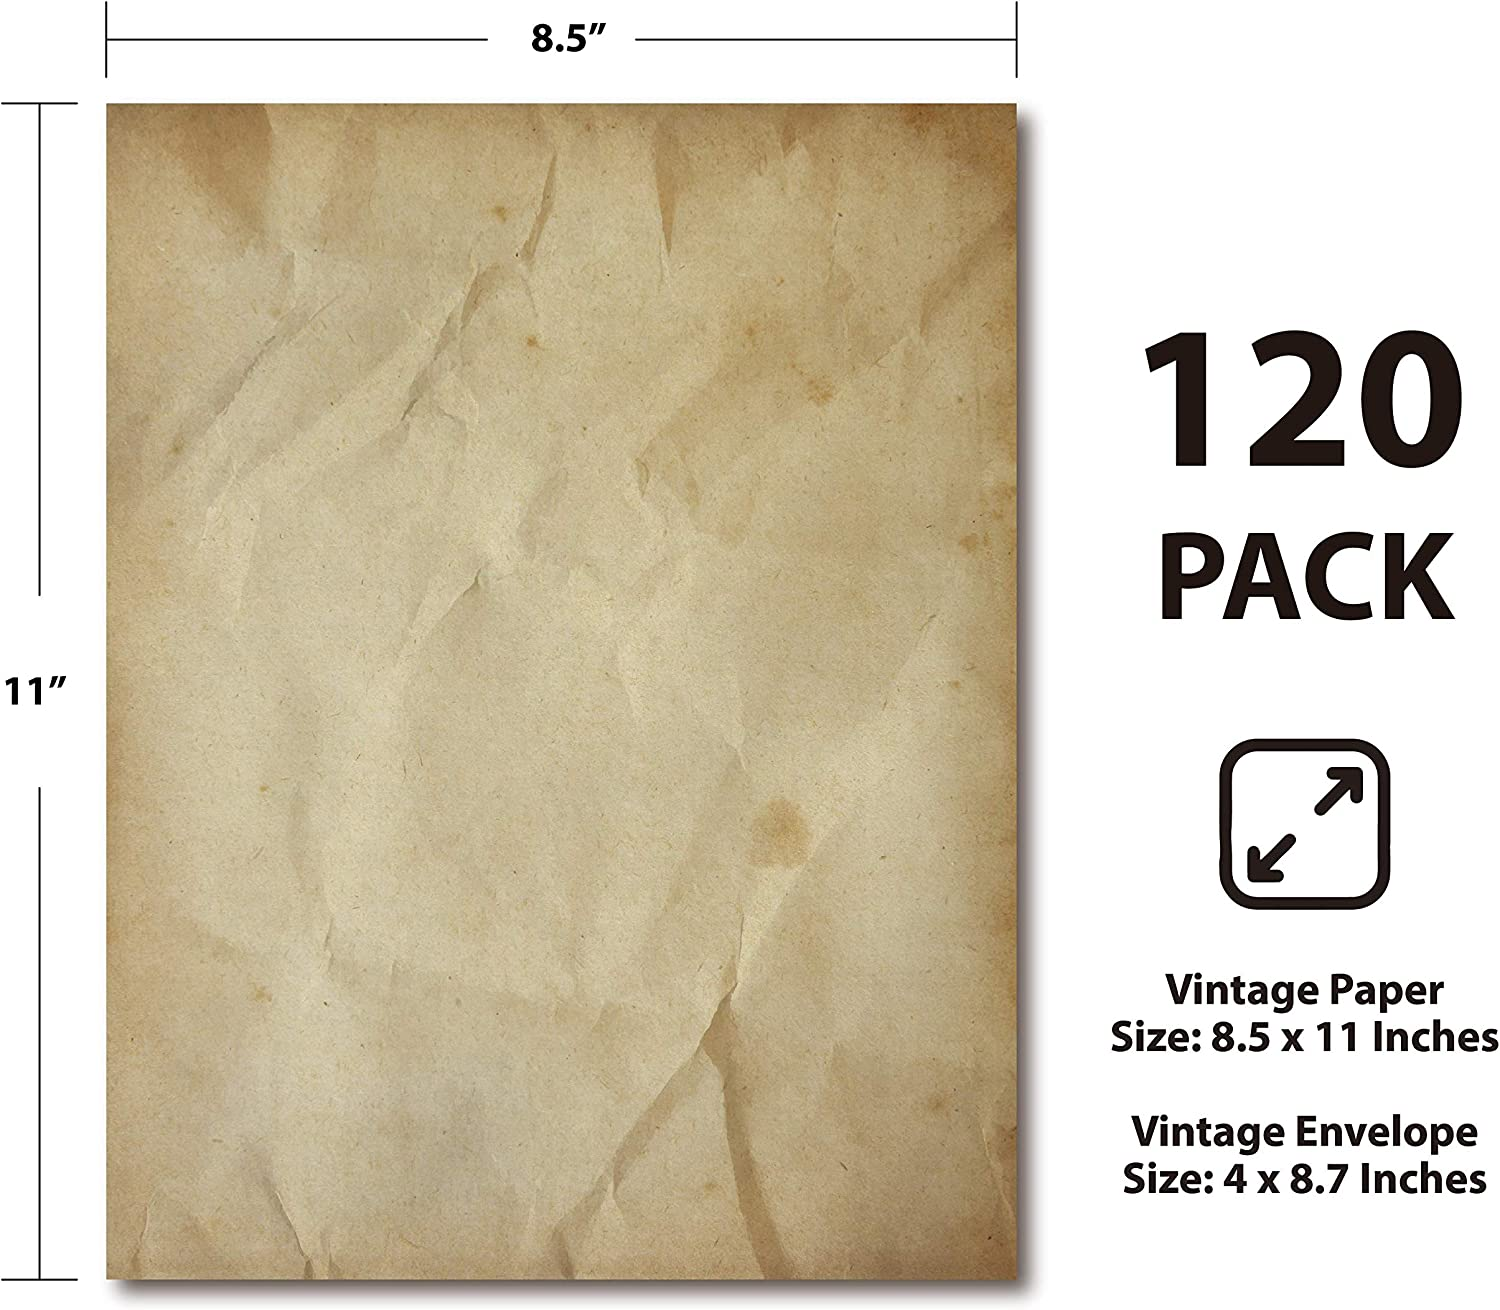 Aged Paper Design Parchment Writing Stationary Vintage Paper 120 Pack Antique Looking Papers 6 Assorted Design 8.5 x 11 Inches